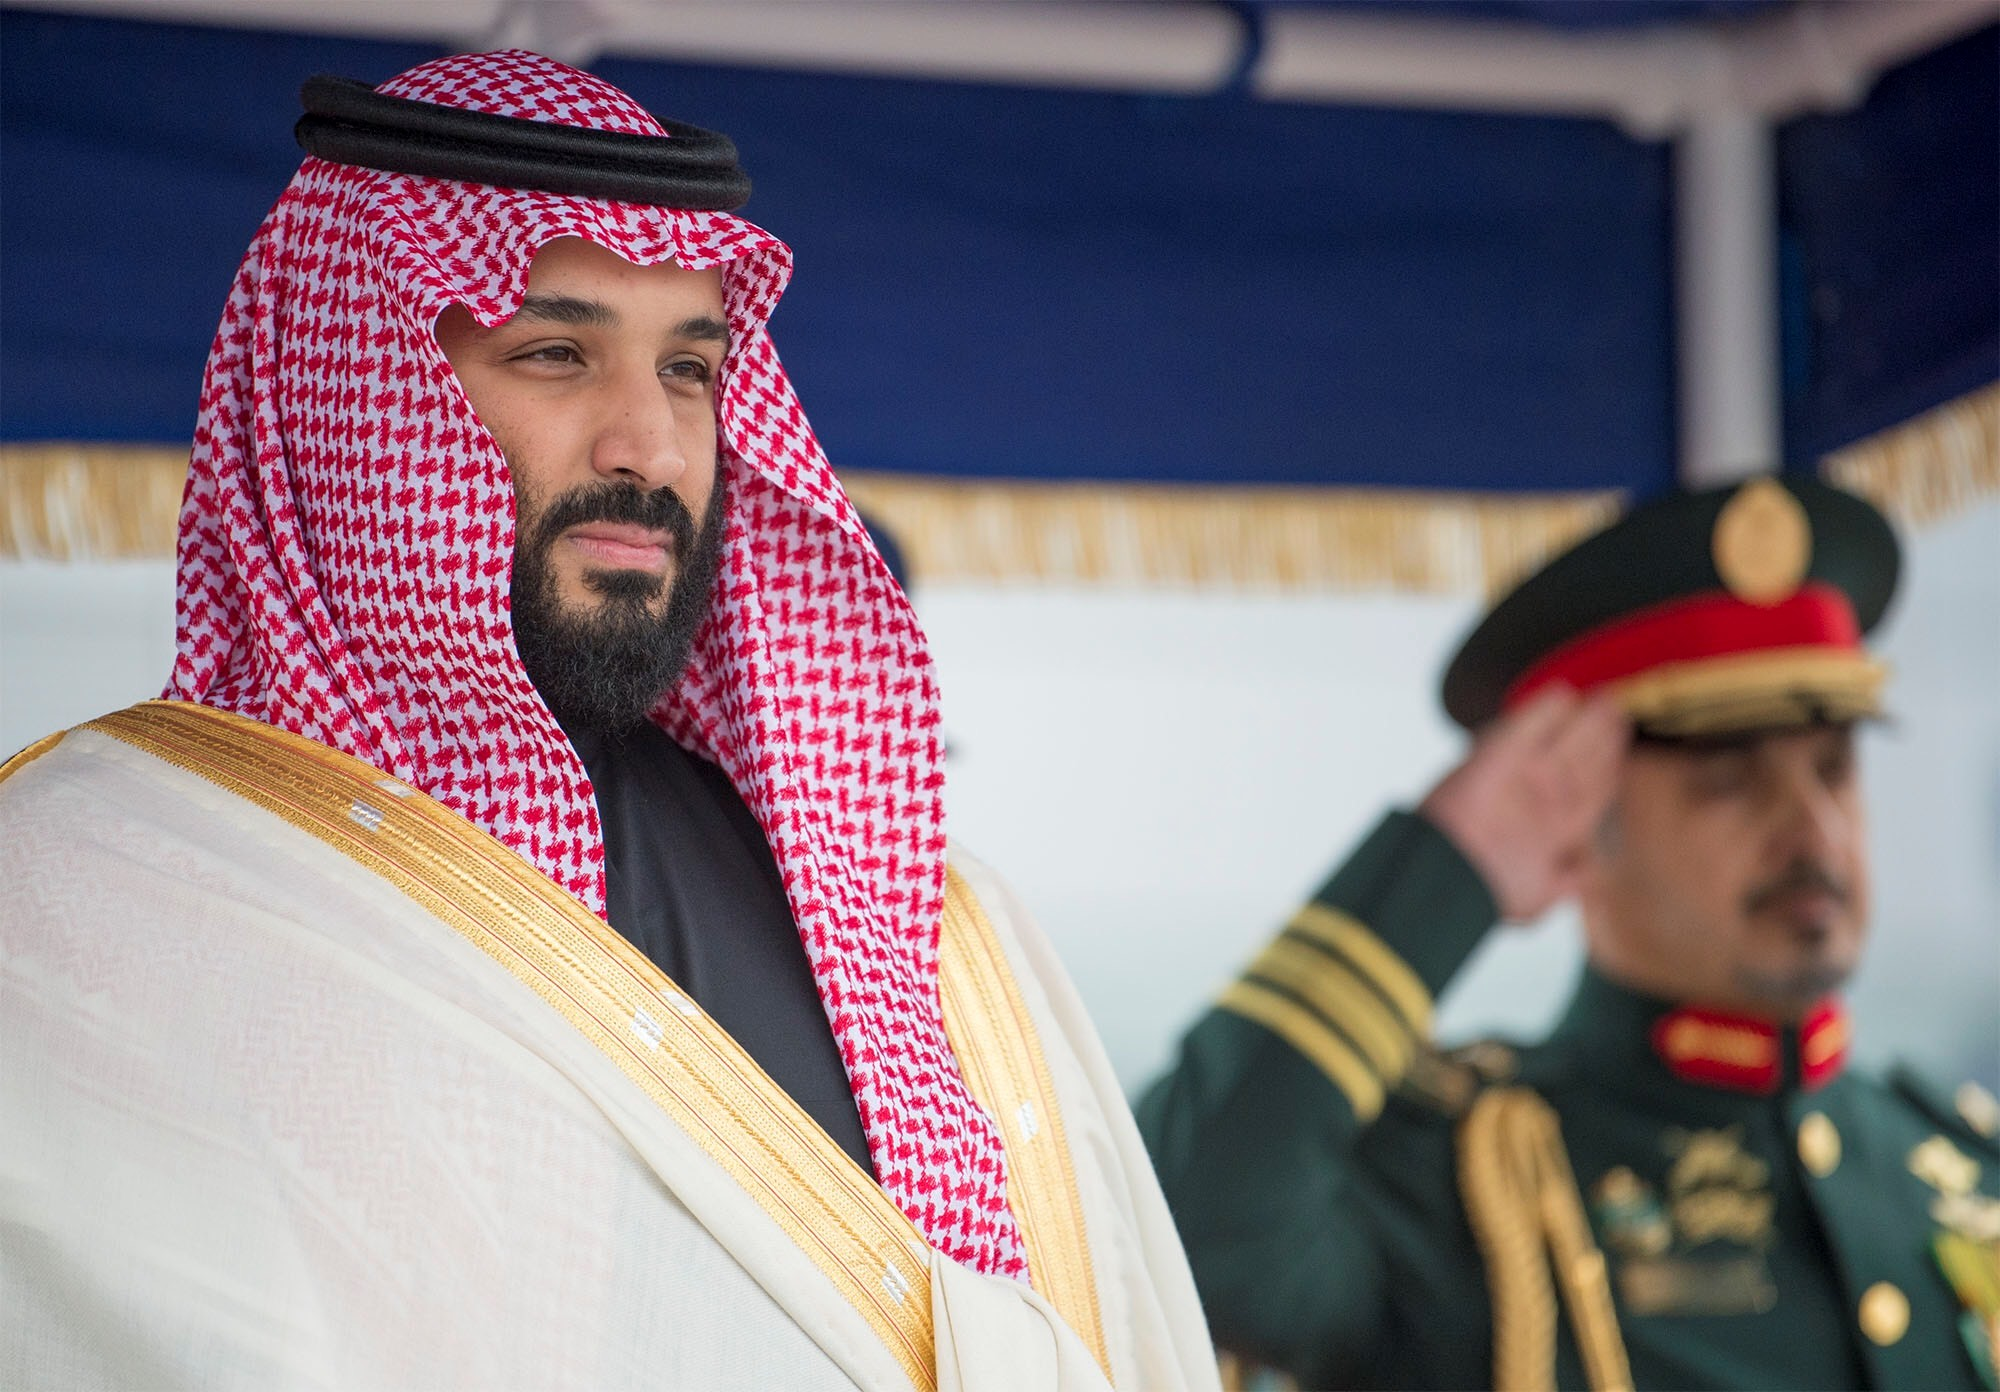 Crown Prince and Defense Minister of Saudi Arabia Mohammad bin Salman in London, England on March 9, 2018.